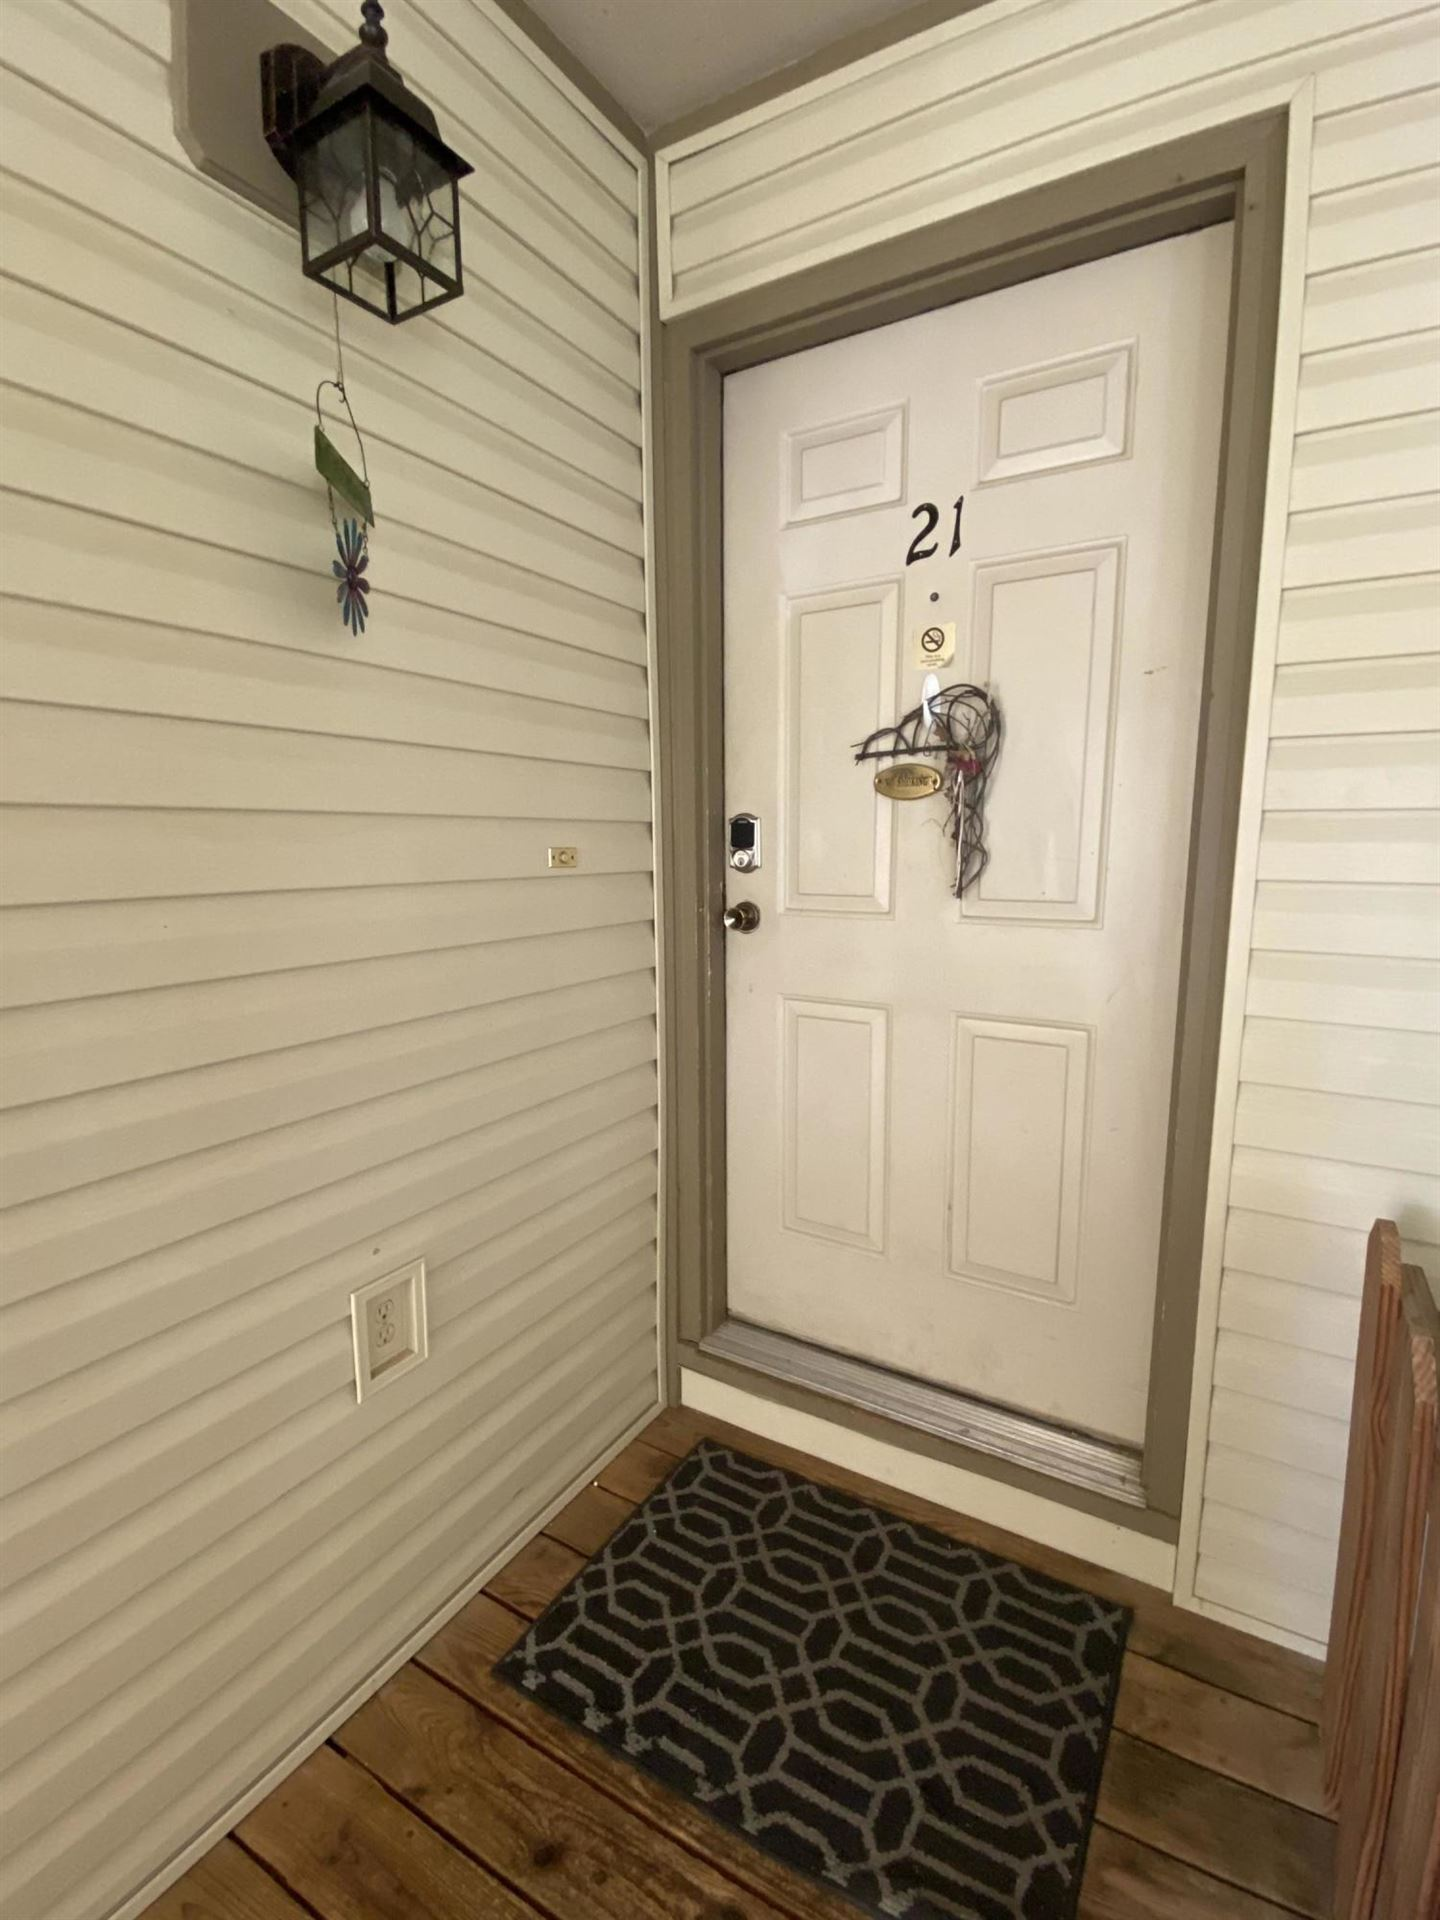 Photo of 187 Clubhouse Dr #21, Branson, MO 65616 (MLS # 60192762)